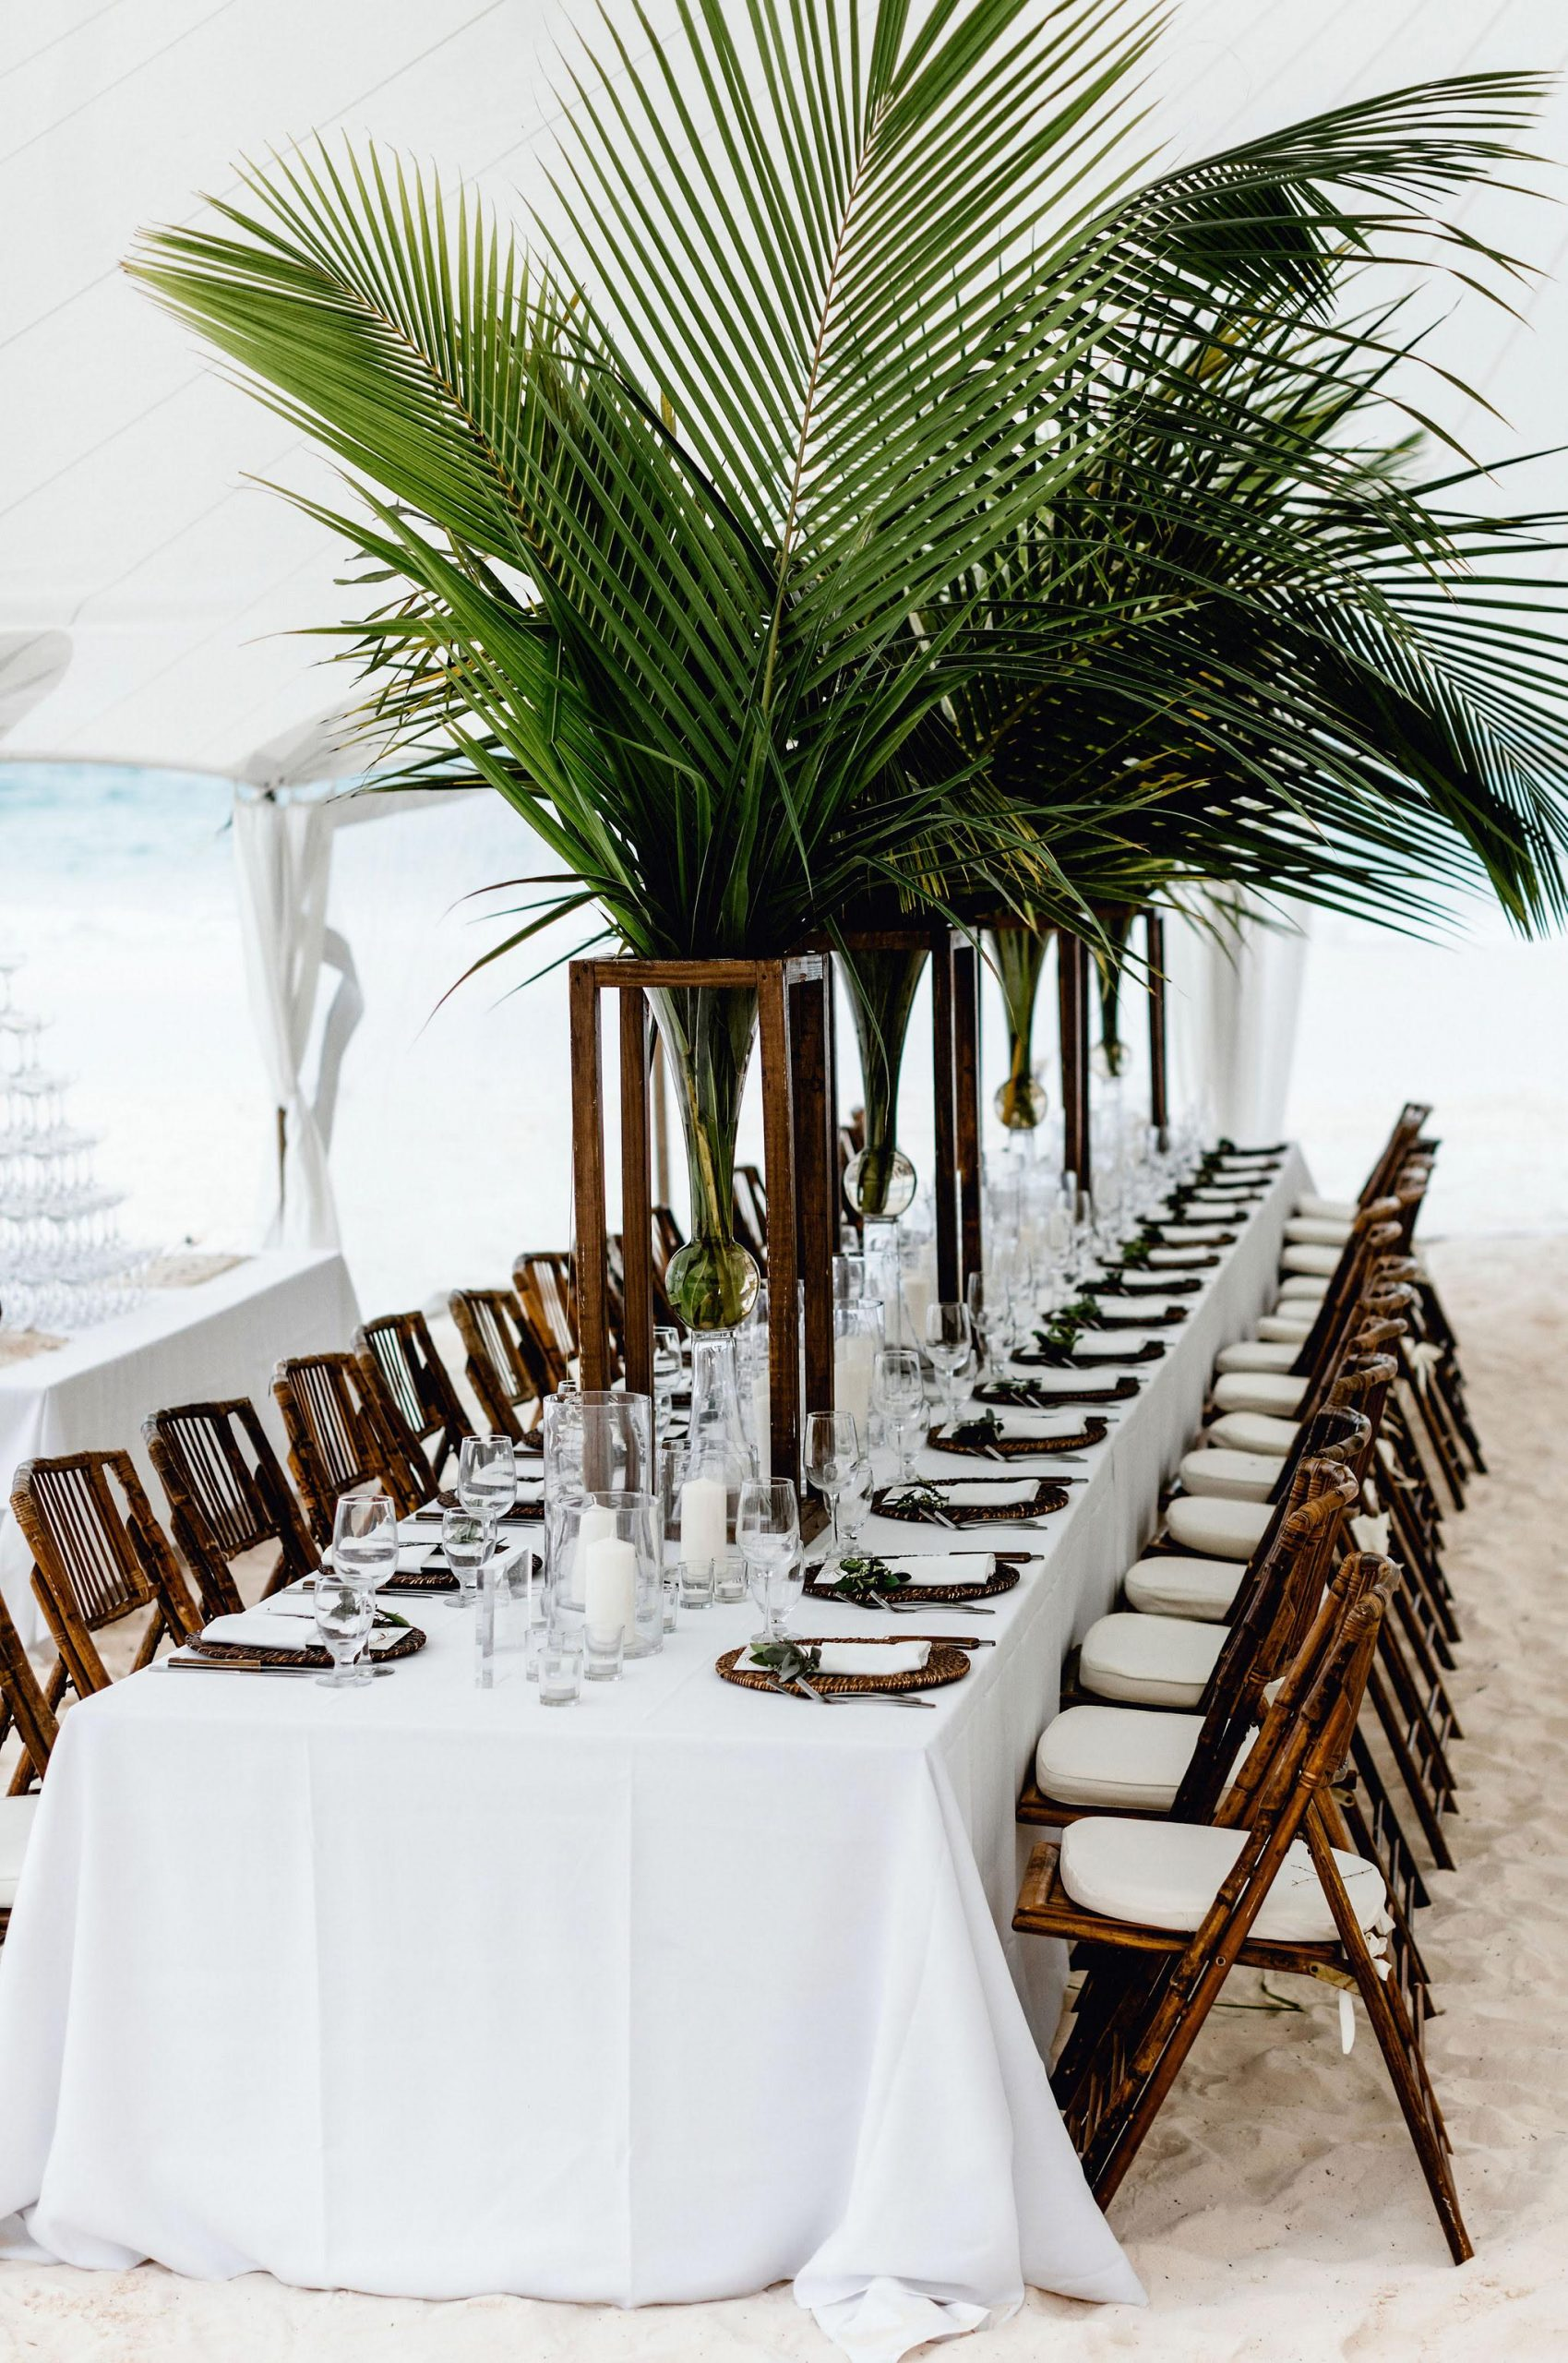 ALL ABOUT THE TROPICAL WEDDING STYLE